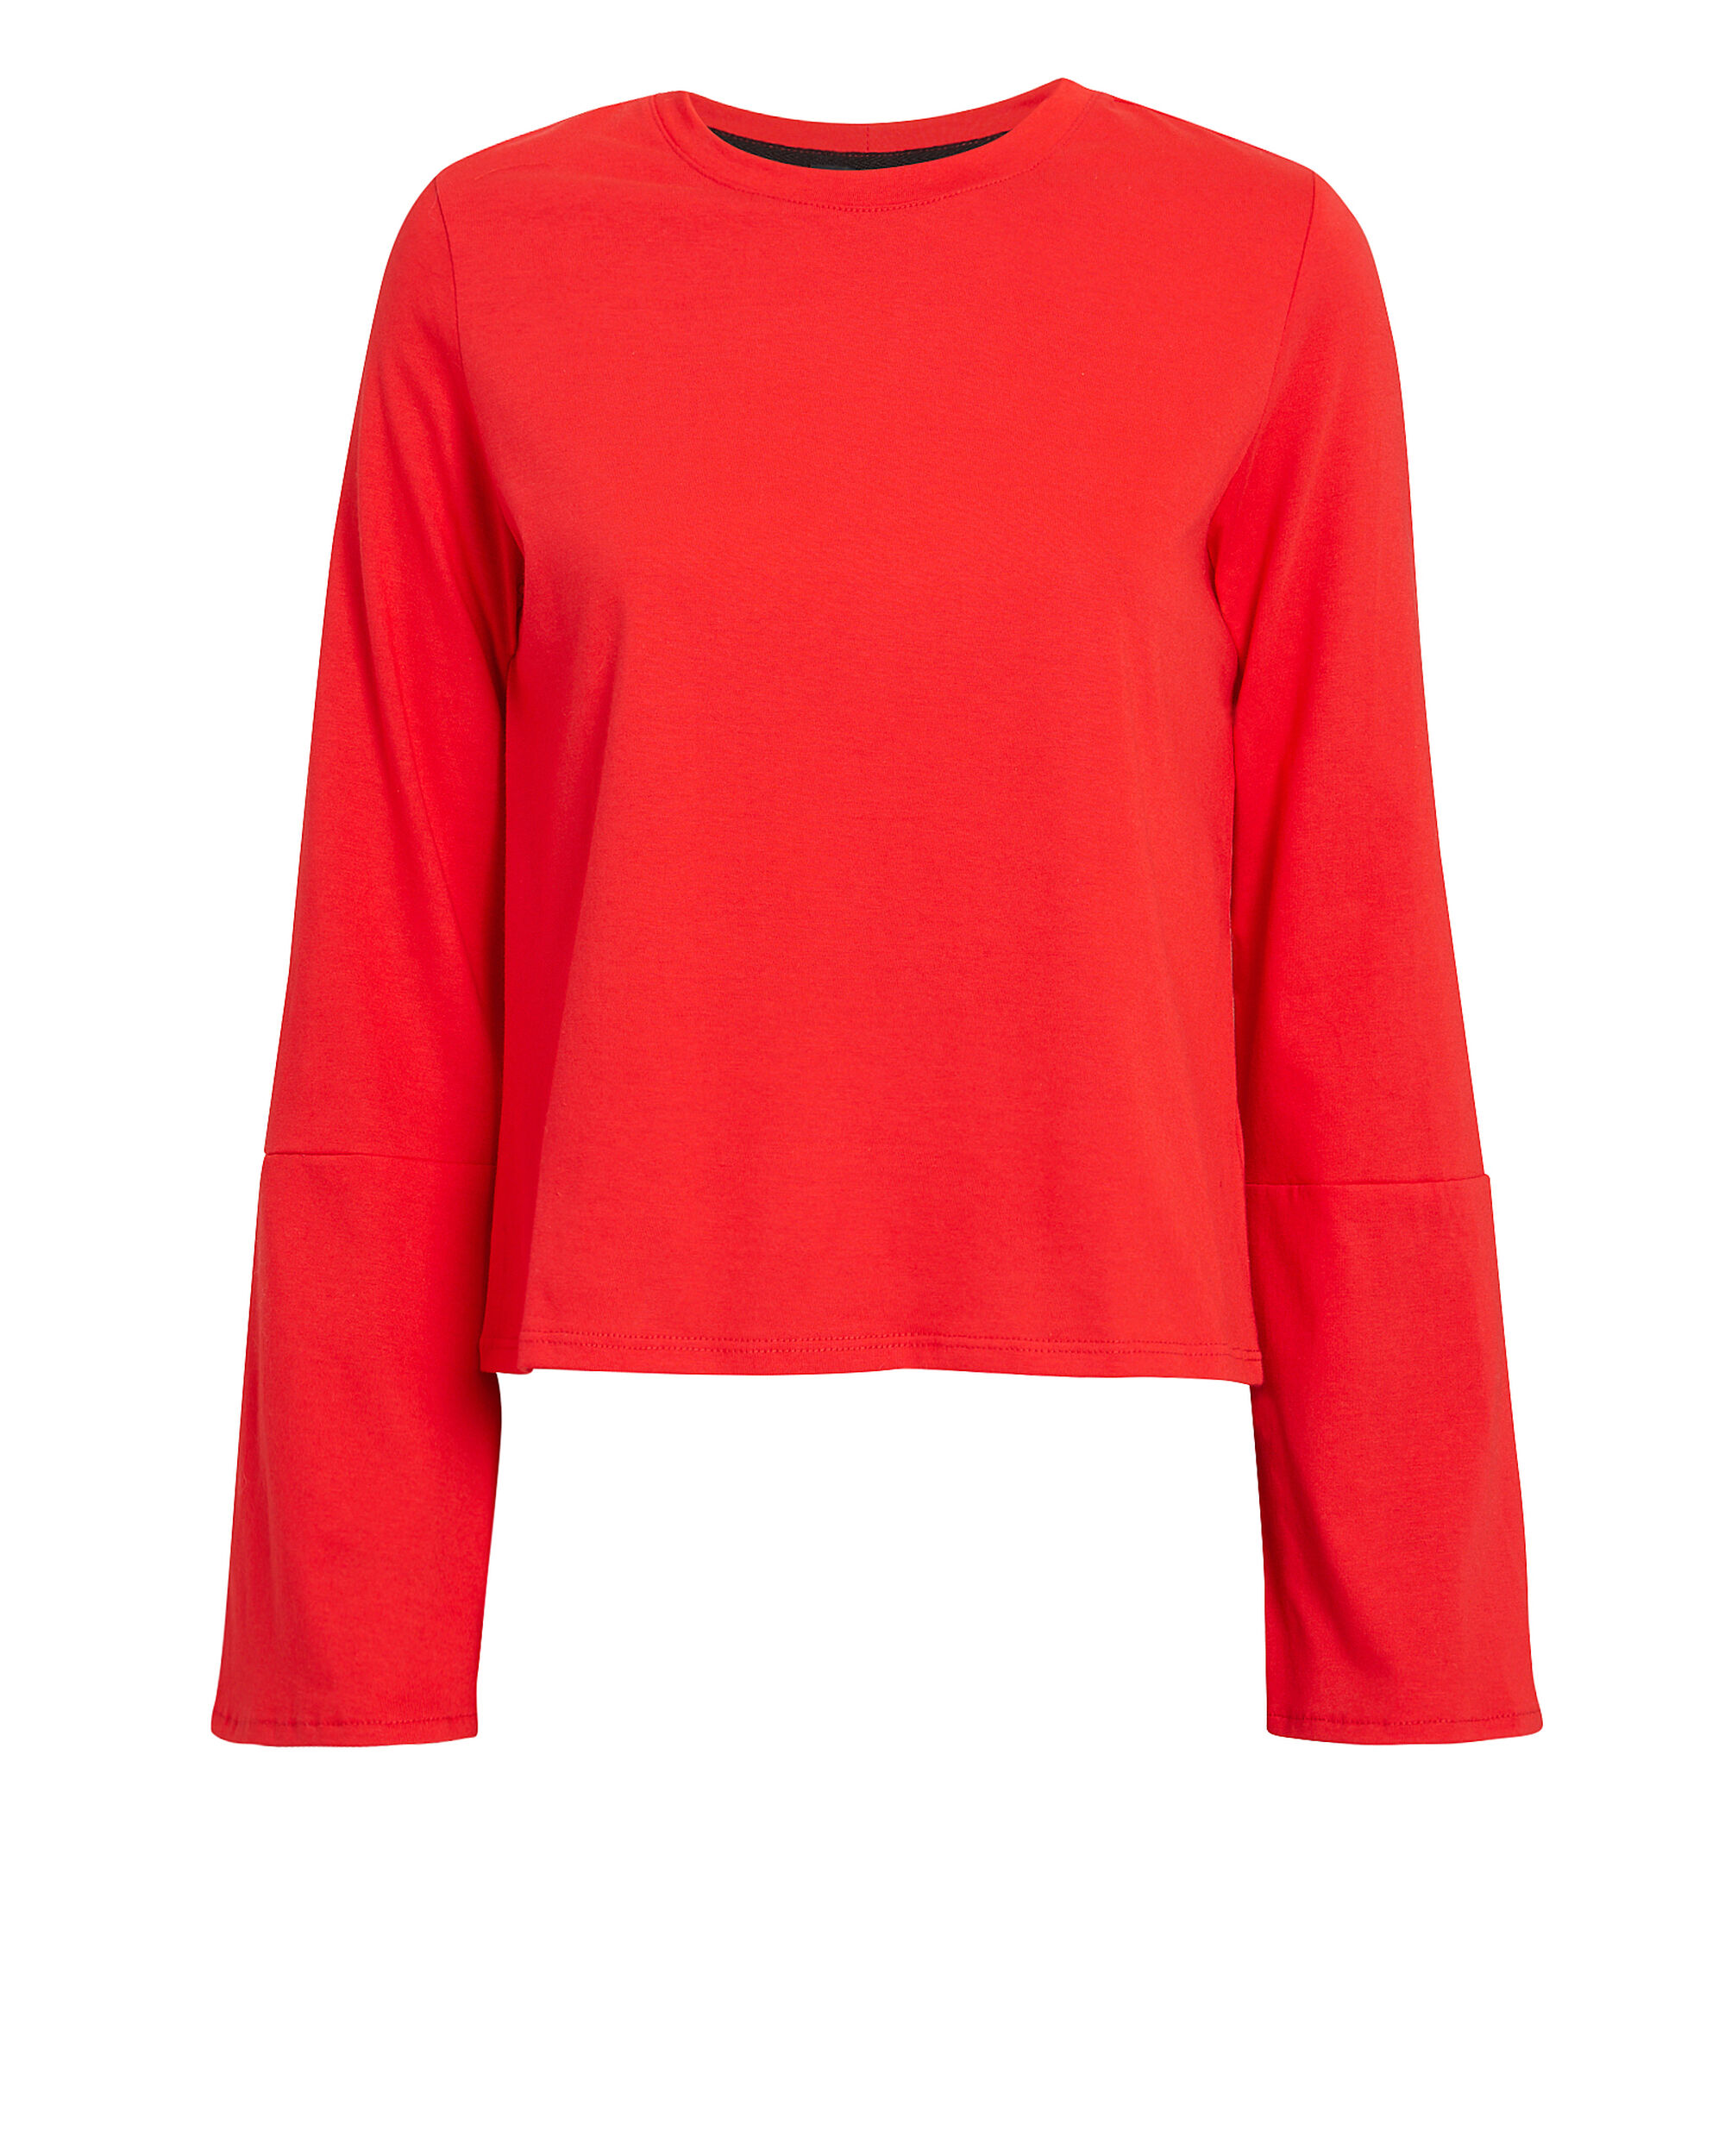 Stark Flare Top, RED, hi-res